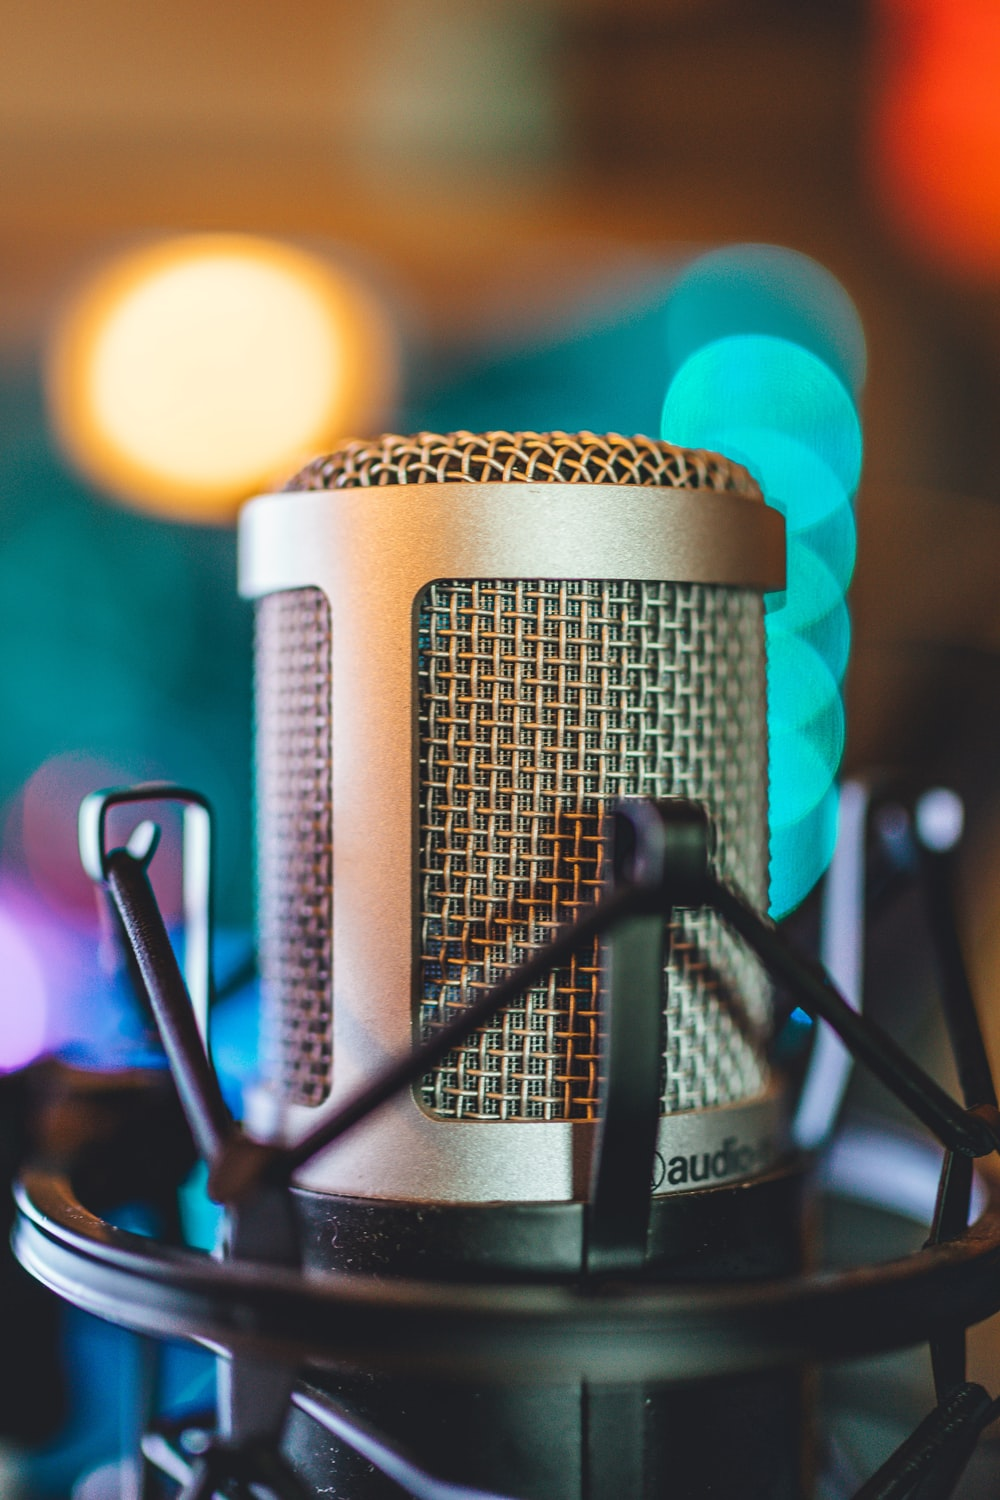 Microphone, blur, sound and record   HD photo by Thomas Le